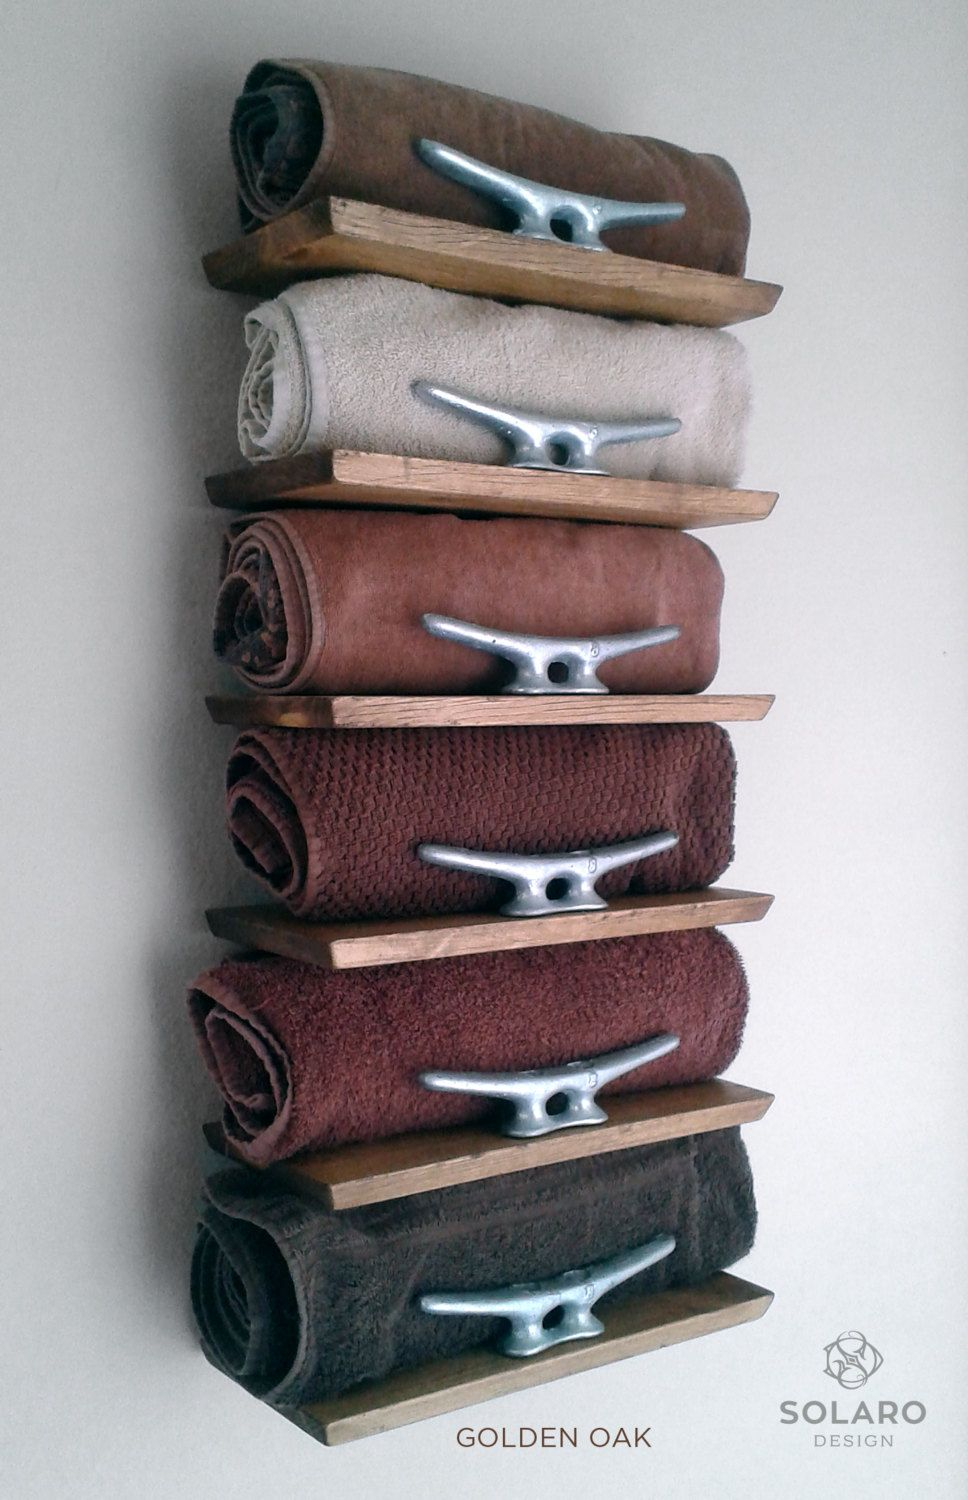 Handtuch Regal Rustic Nautical Towel Rack 6 Shelves Deko Haus Handtücher